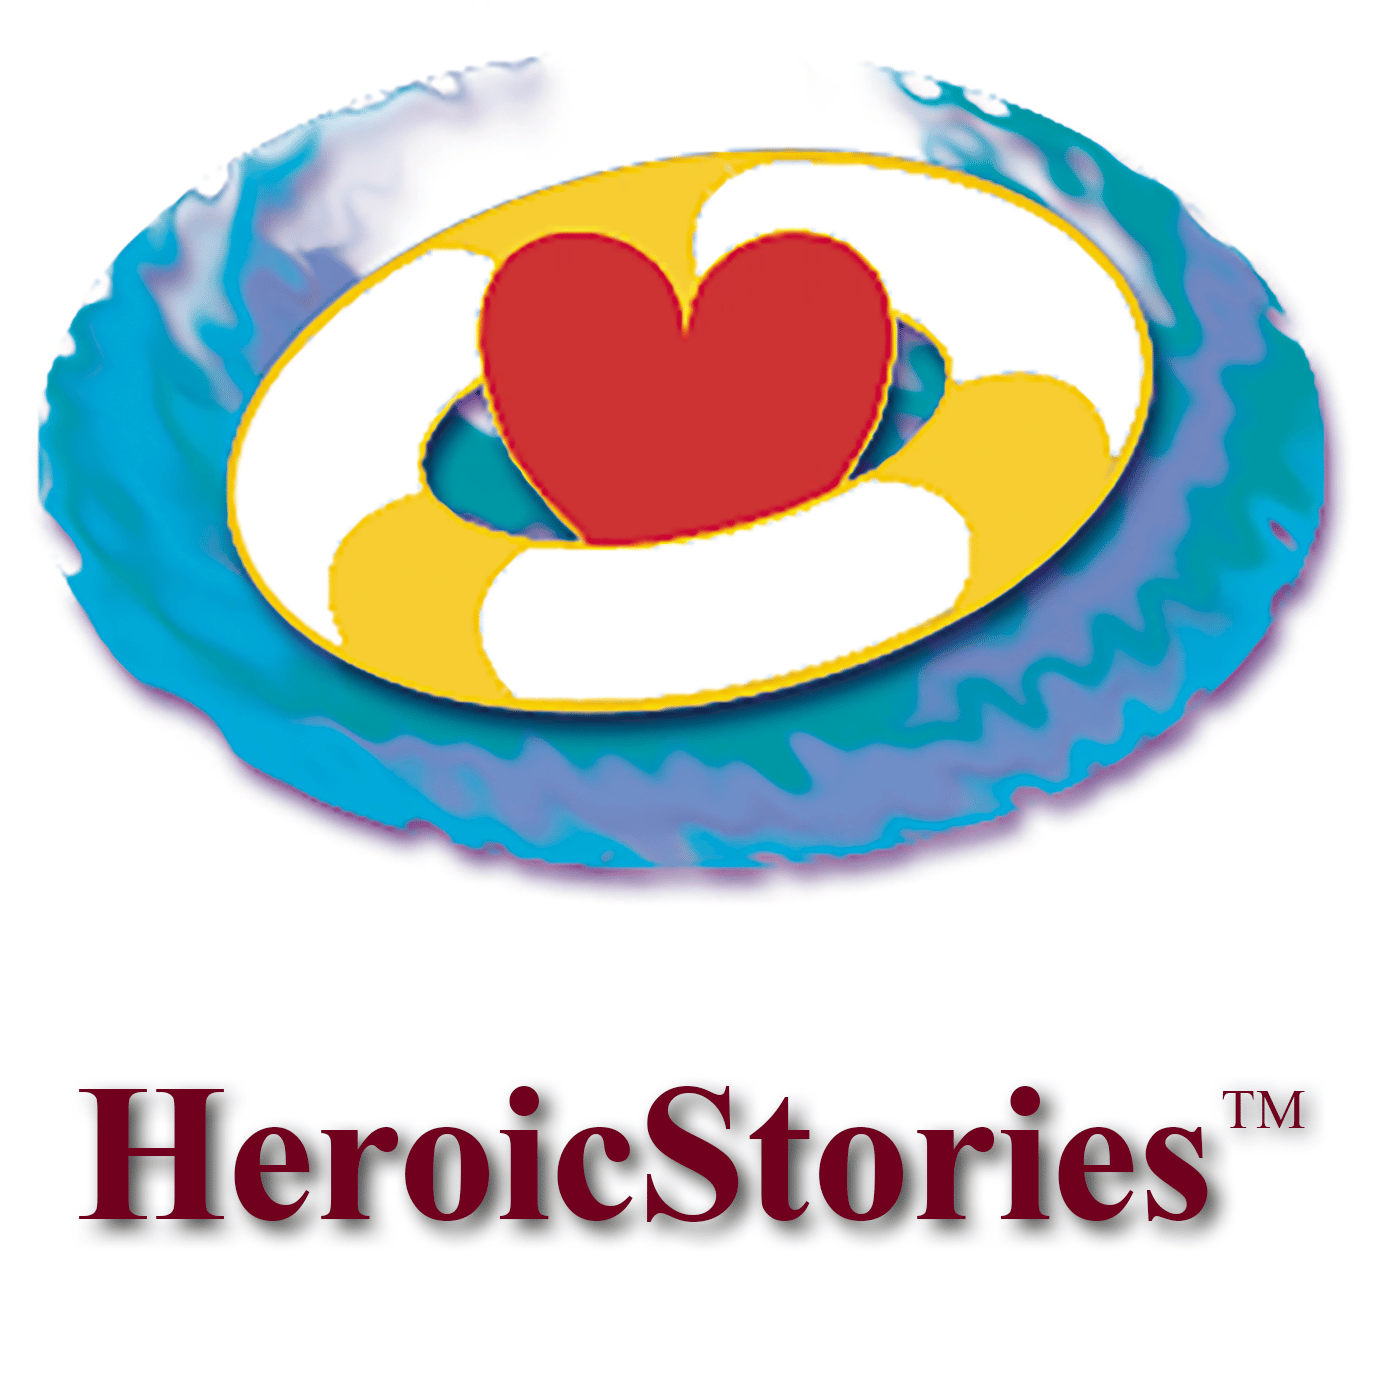 HeroicStories